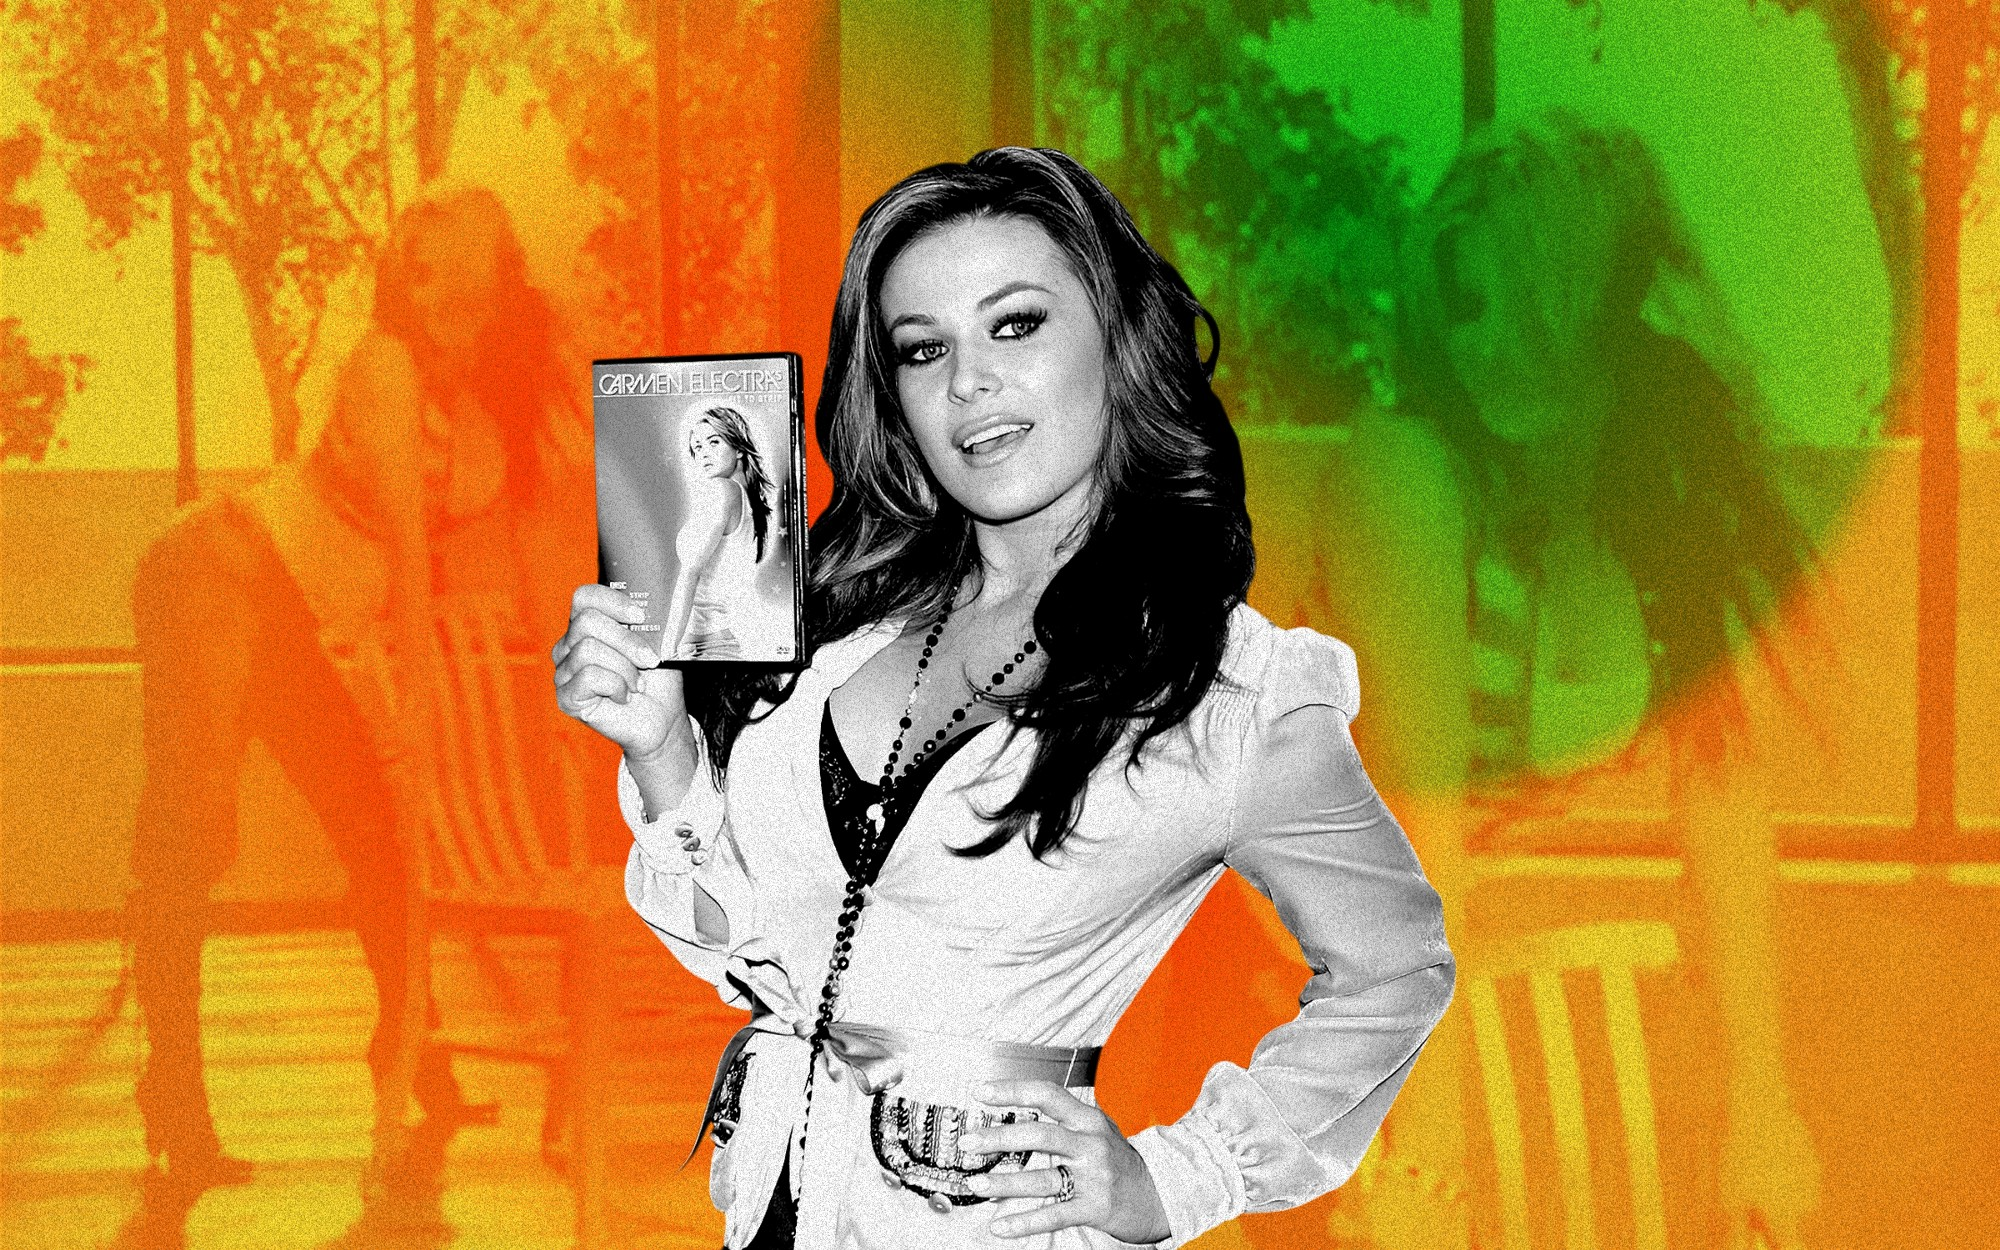 Carmen Electra holding her workout dvd cover against filtered images of her mid-workout.